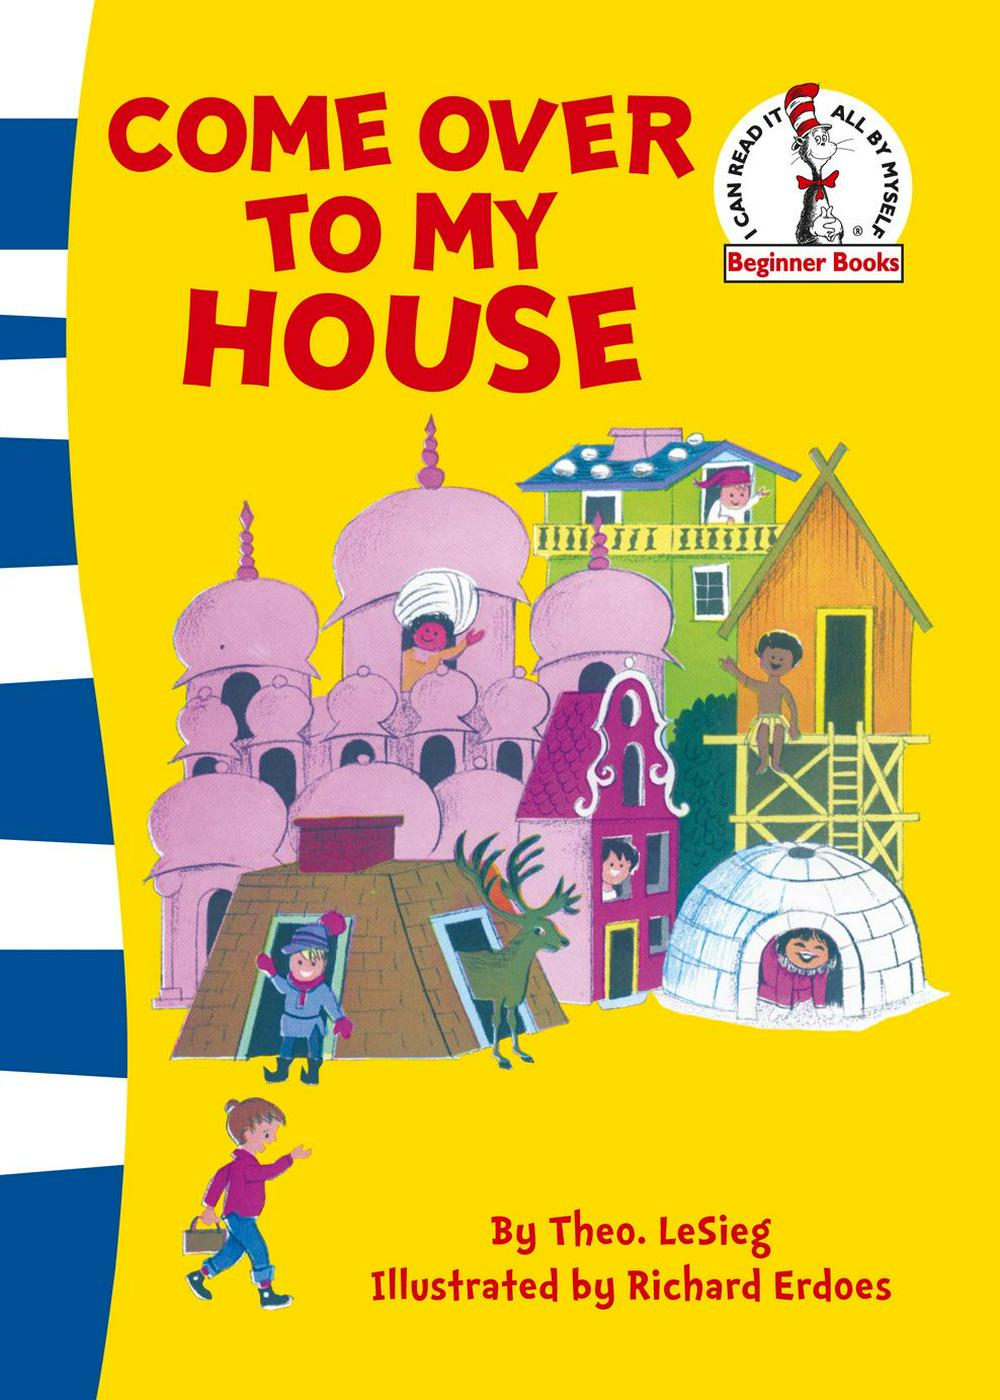 Come Over to My House (Paperback) by Dr. Seuss, ISBN: 9780007340965